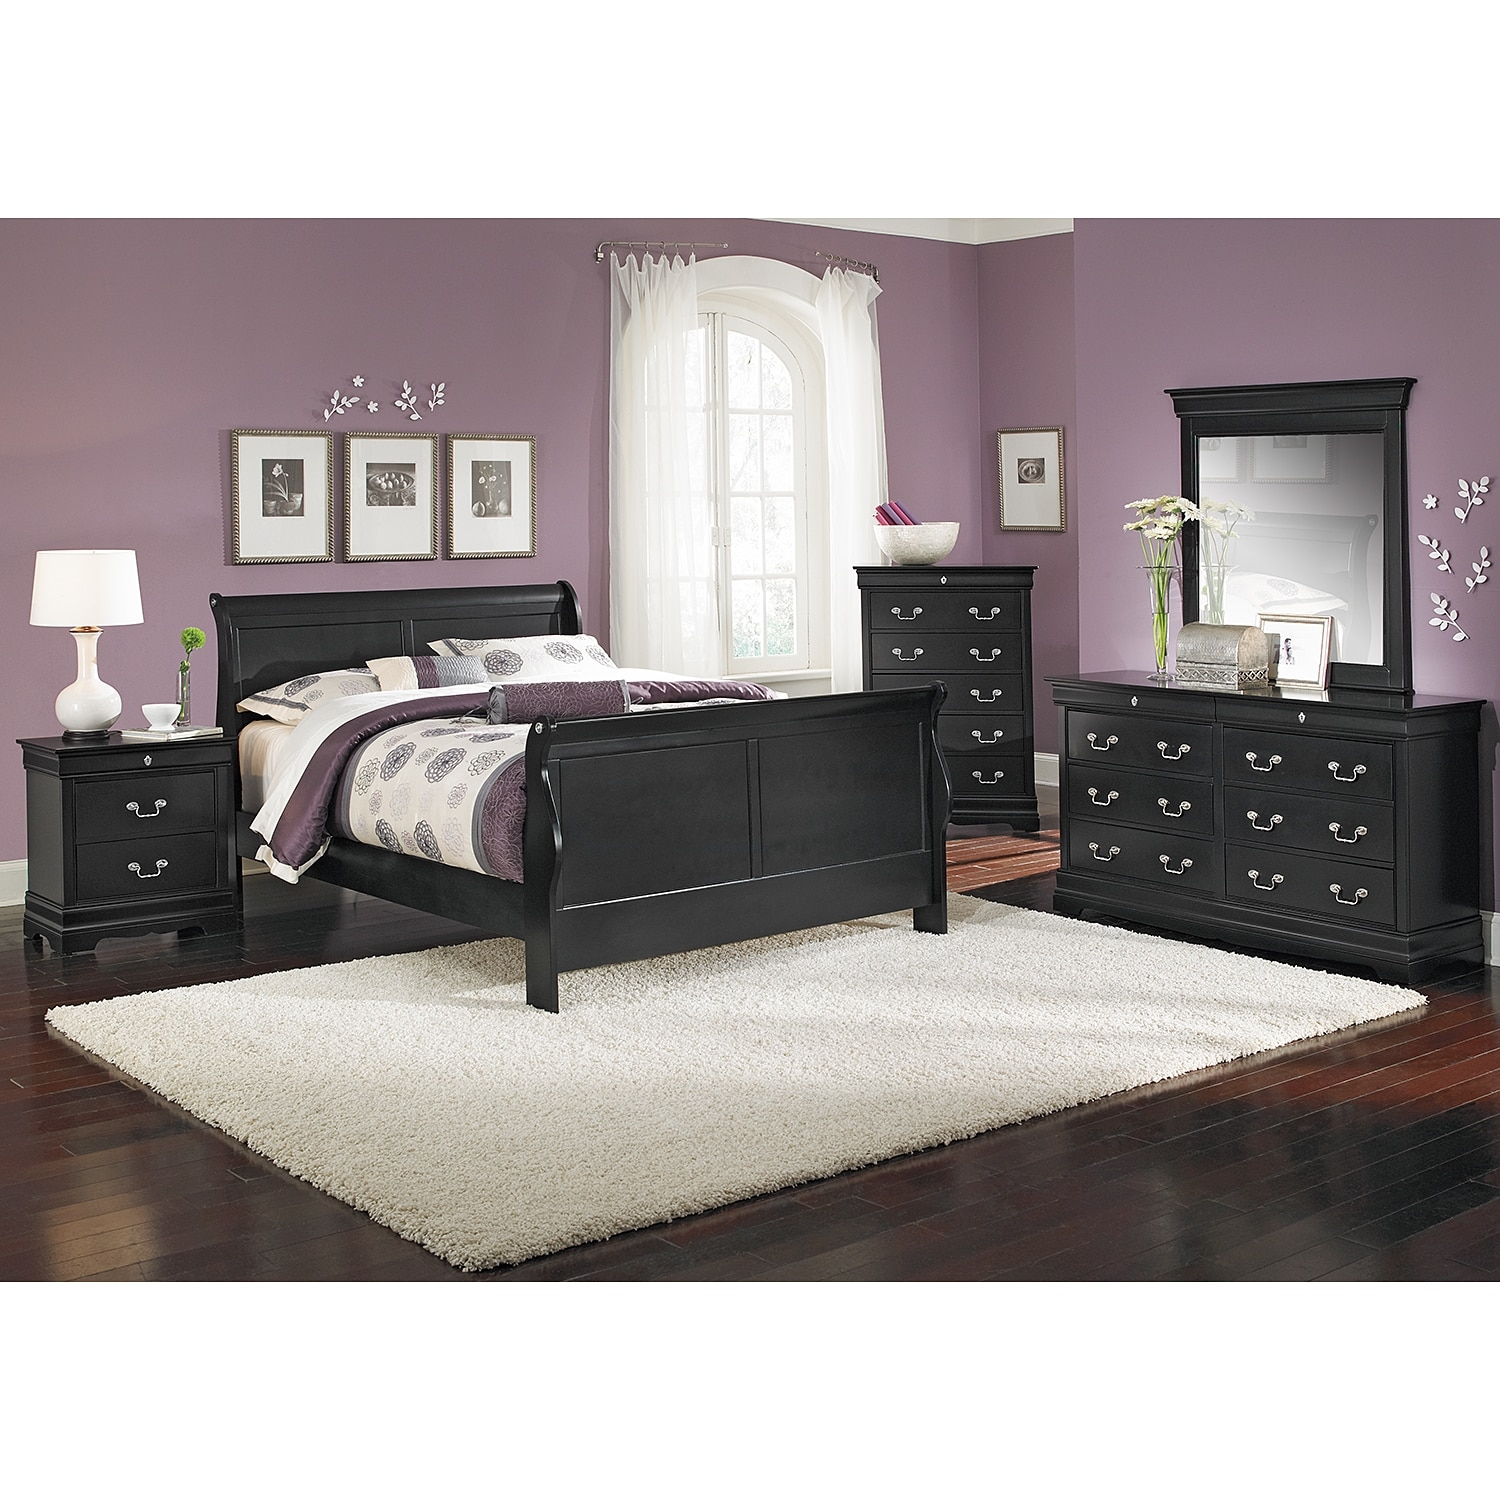 Neo classic 7 piece king bedroom set black american for American bedrooms